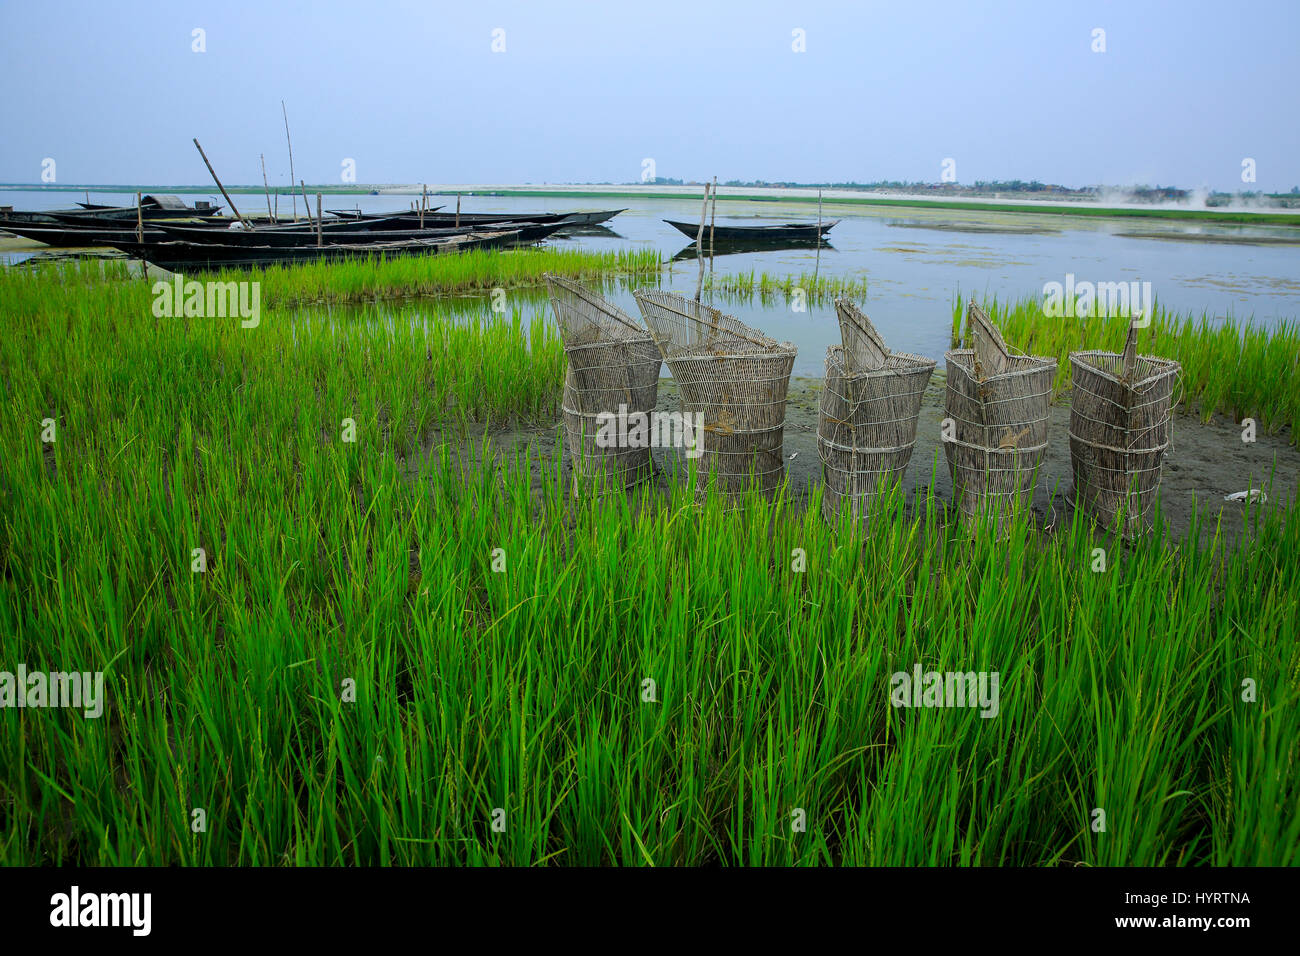 Fishing trap at the bank of Bangali River, Bogra, Bangladesh. - Stock Image